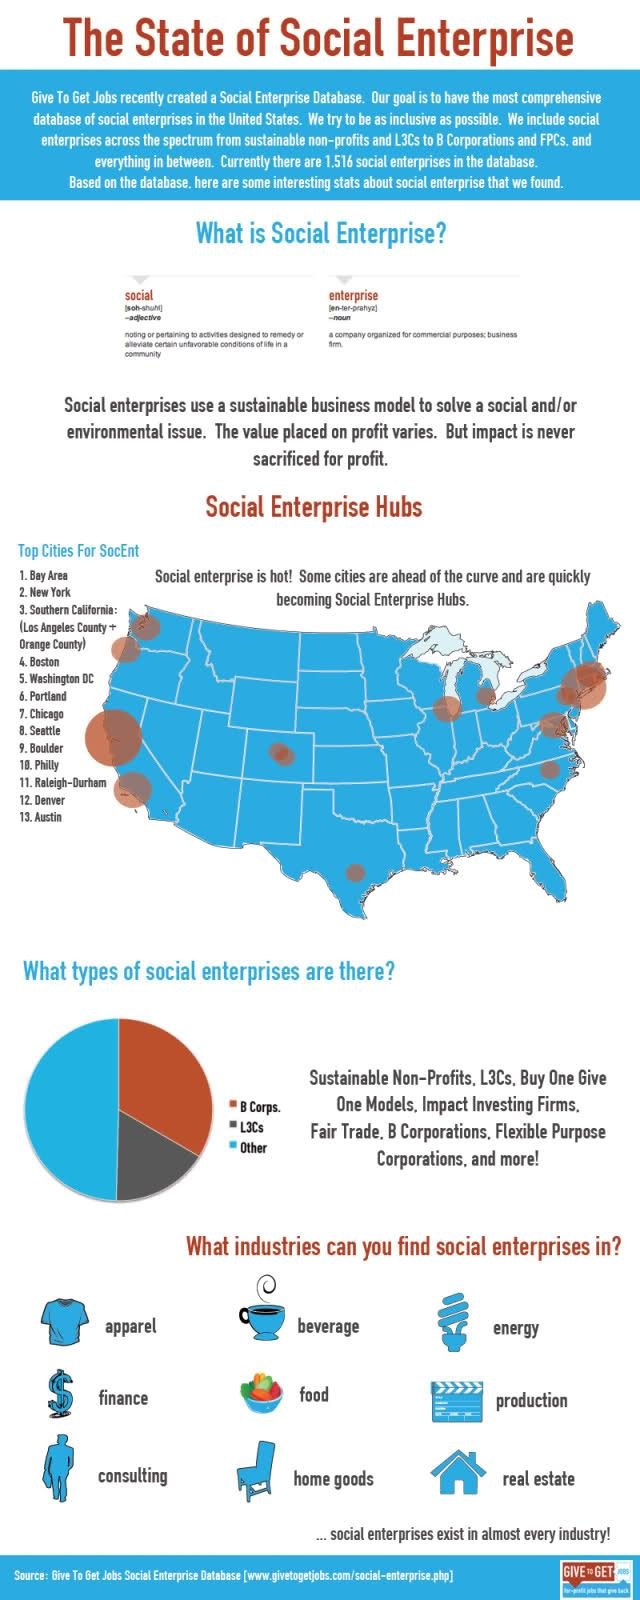 best ideas about social enterprise examples us hot spots for social enterprise industries they are common in infograph via givetogetjobs